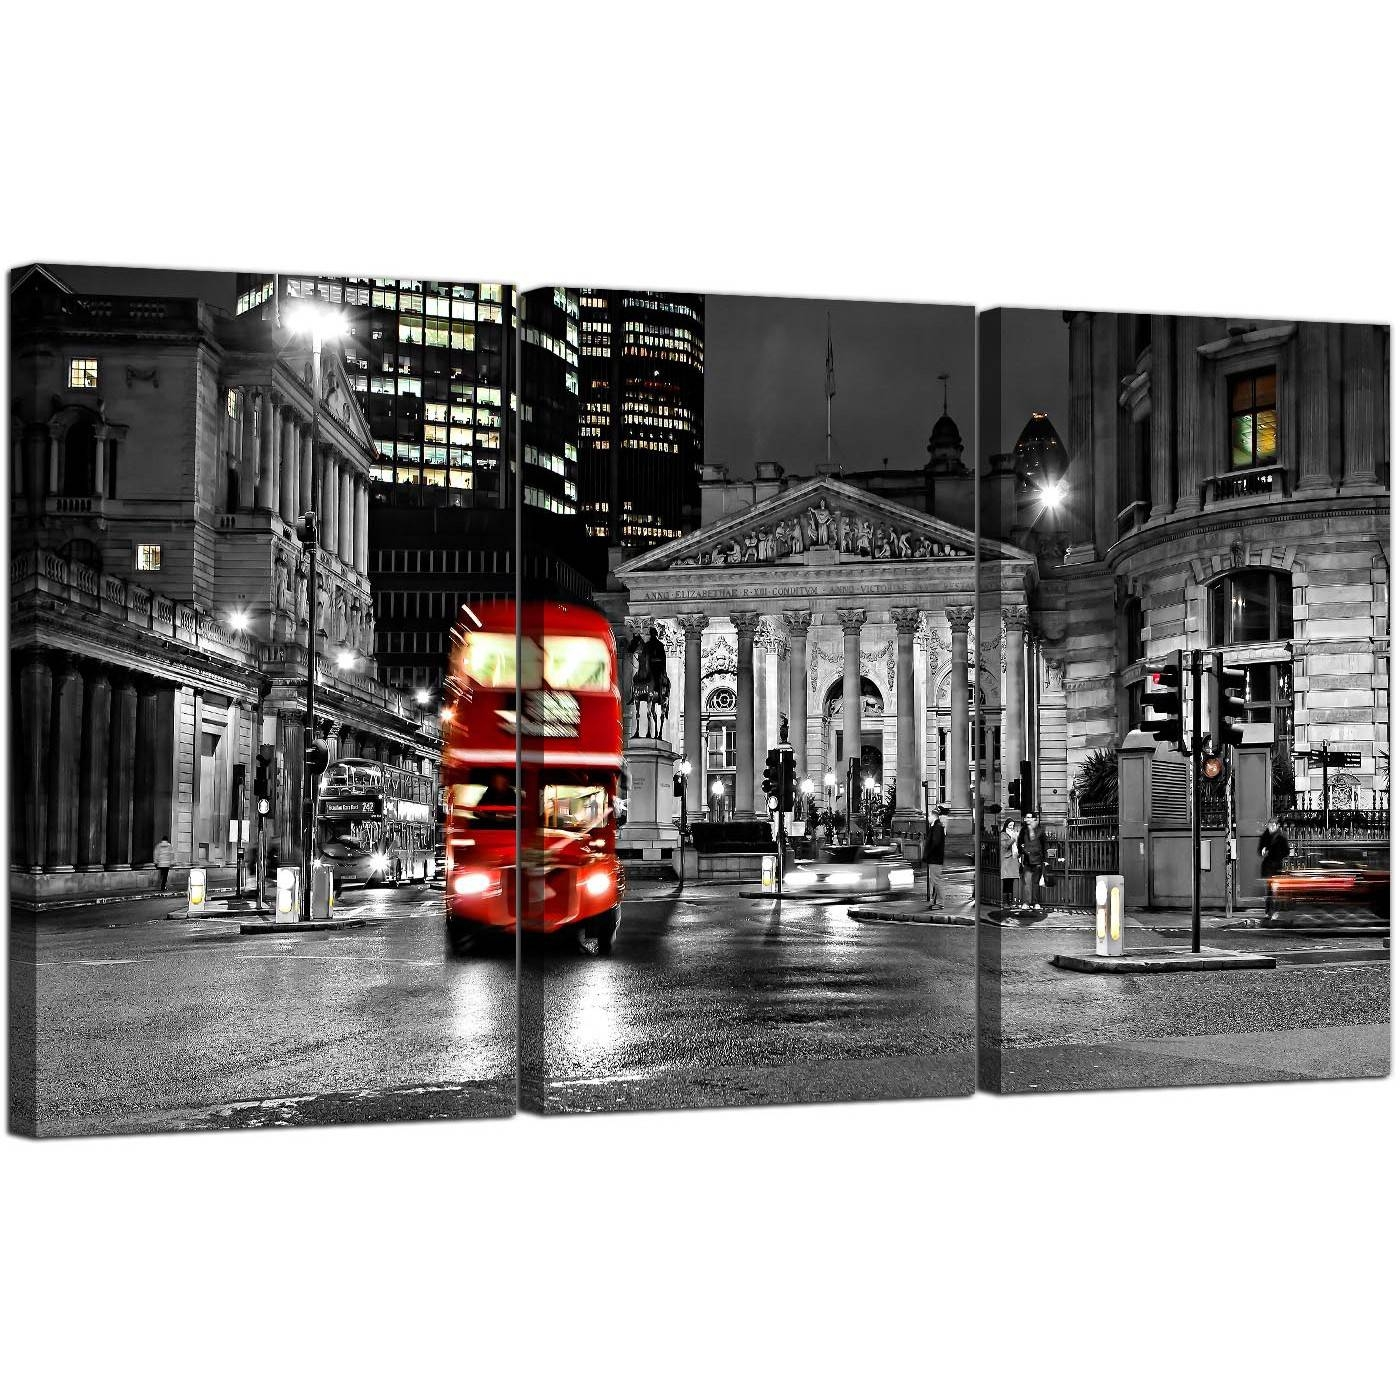 Red London Bus Canvas Wall Art 3 Panel For Your Living Room In Current London Scene Wall Art (Gallery 1 of 20)